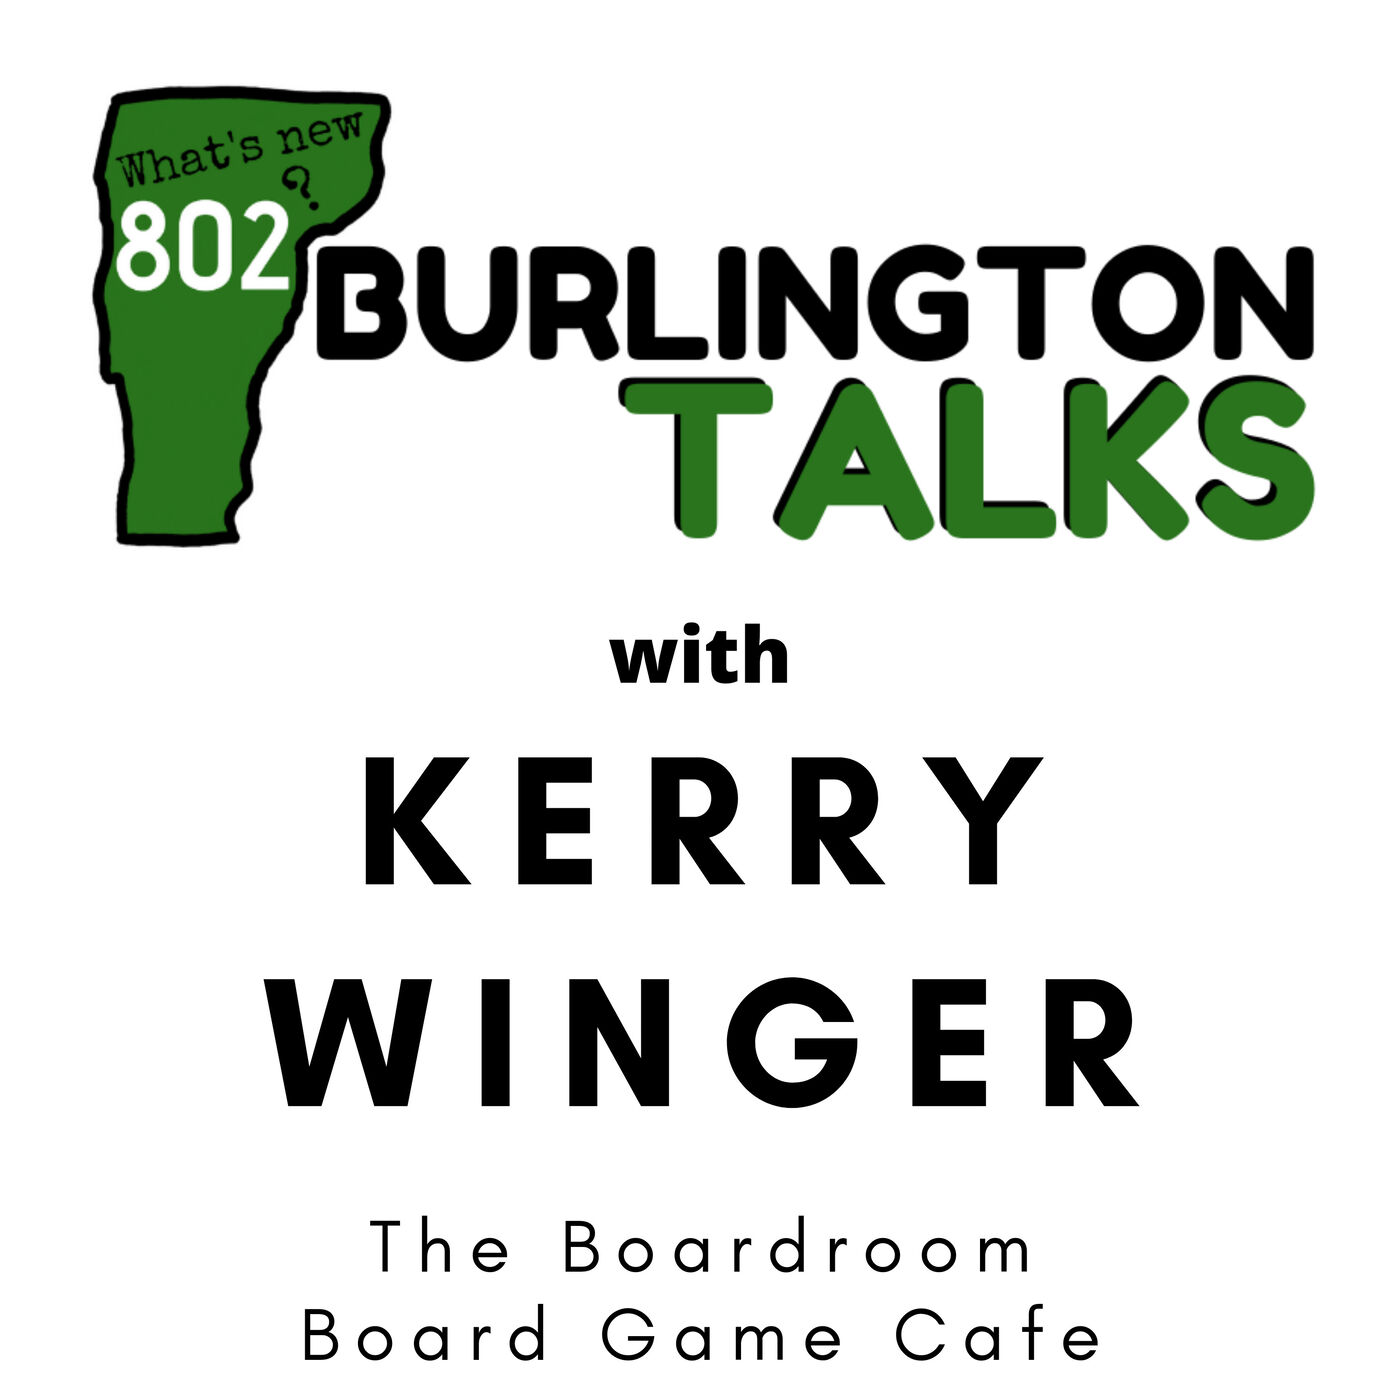 Talking with Kerry Winger of The Boardroom - Board Game Cafe